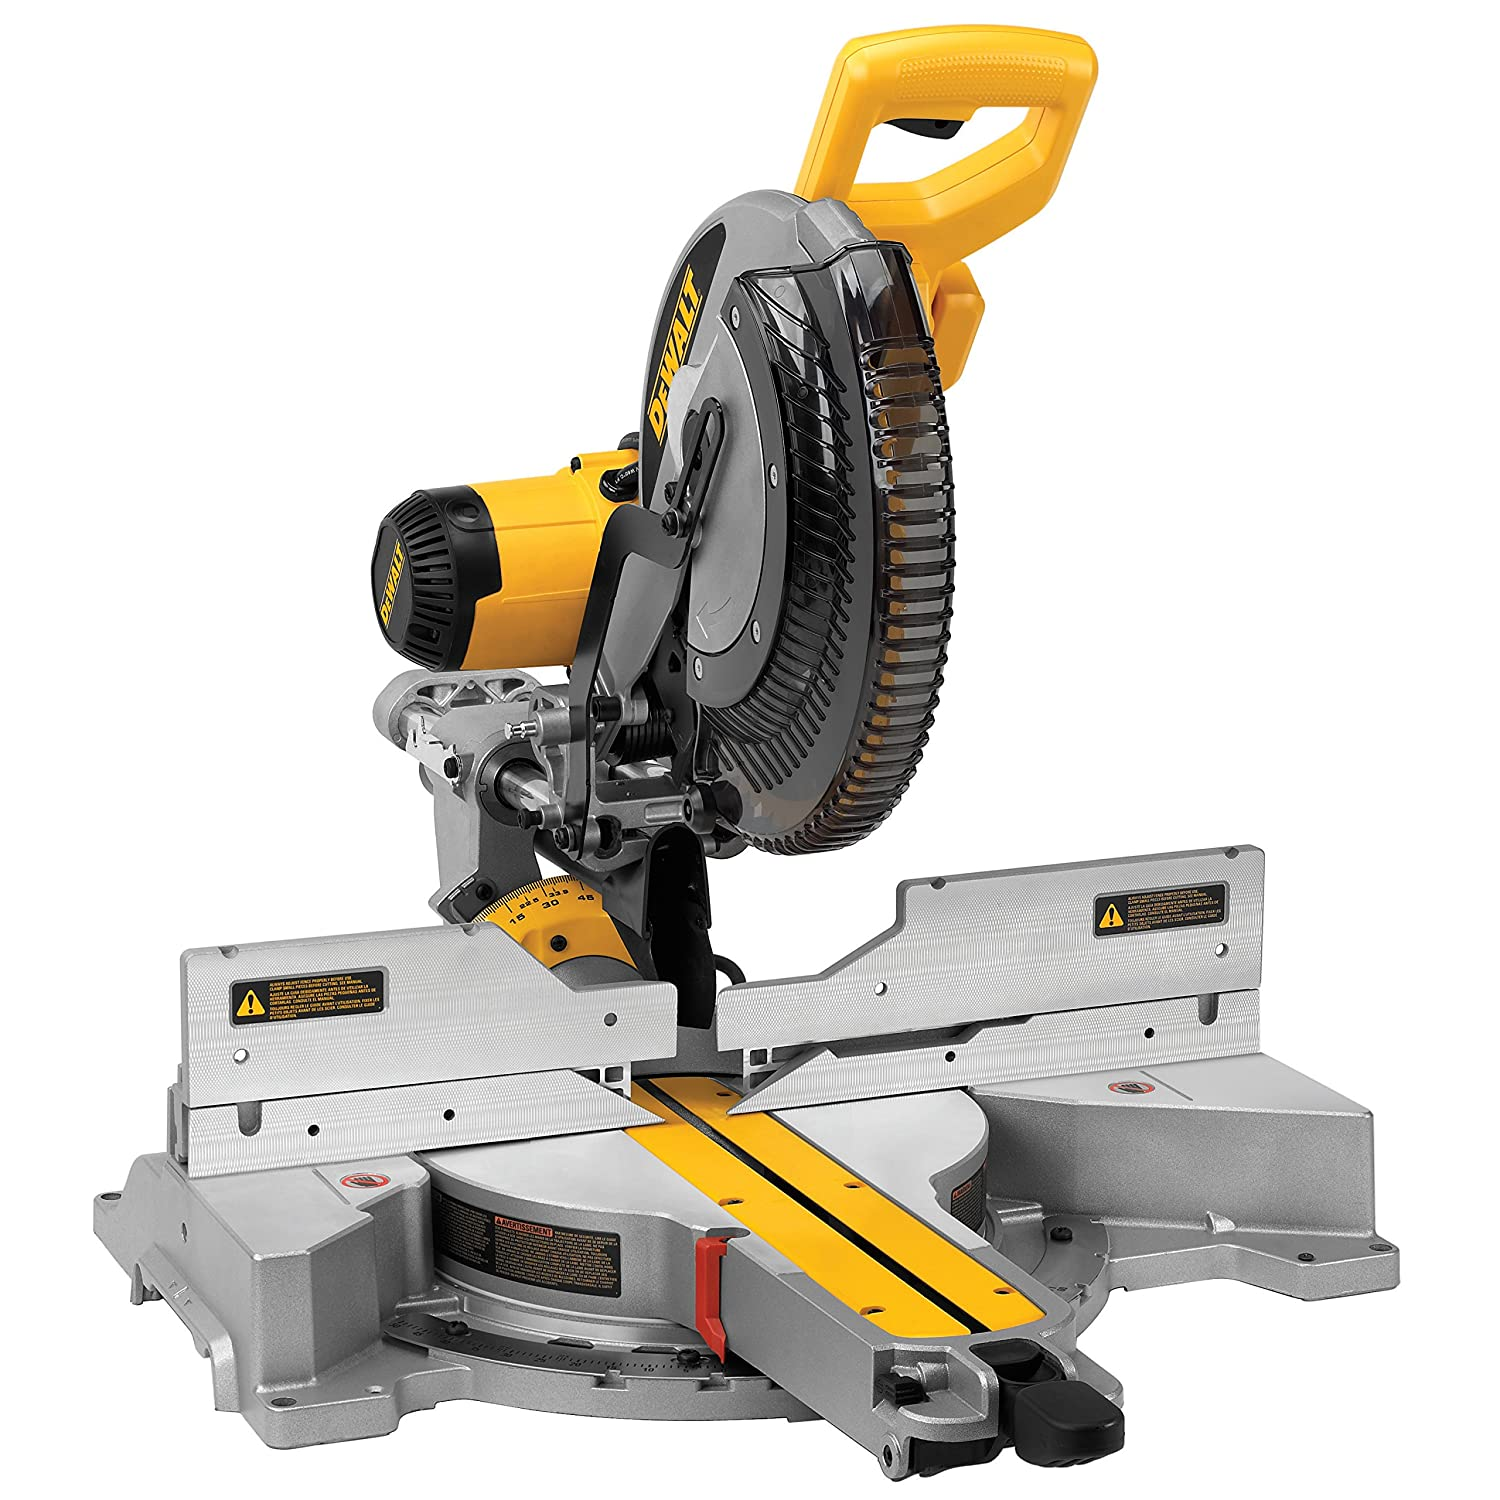 The Best Compound Miter Saw 1